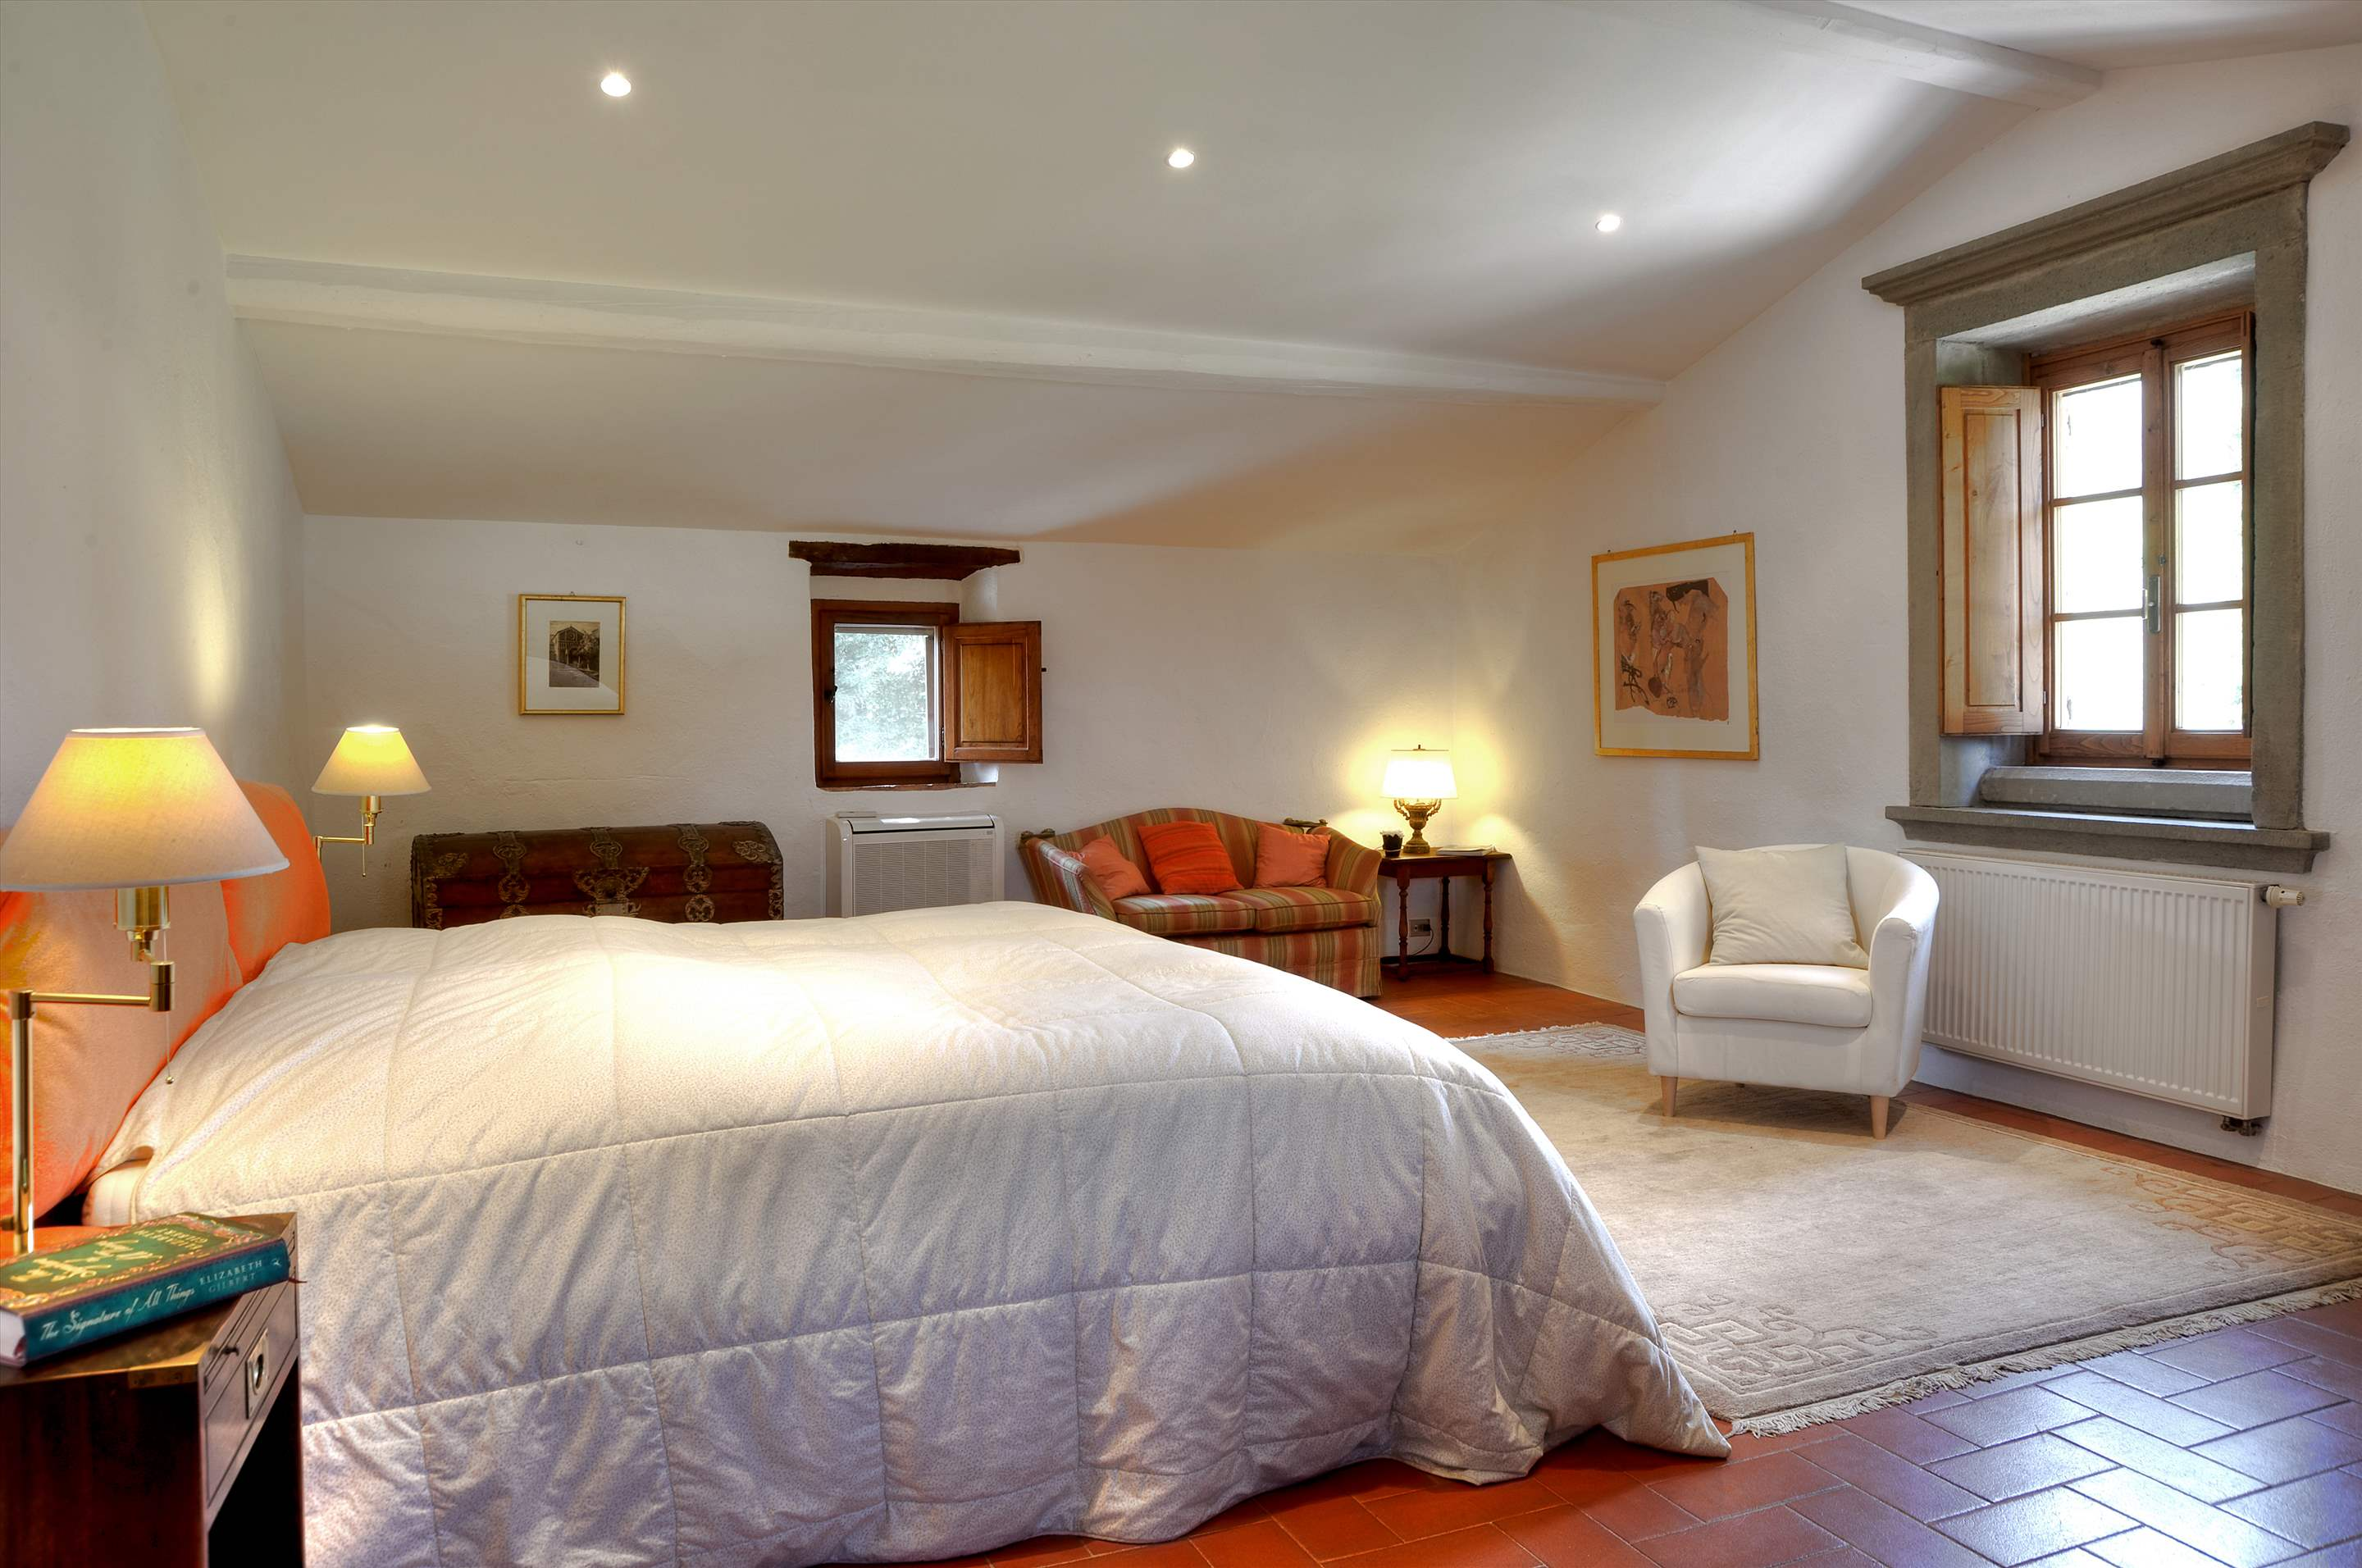 Villa Campana, 5 bedroom villa in Chianti & Countryside, Tuscany Photo #14